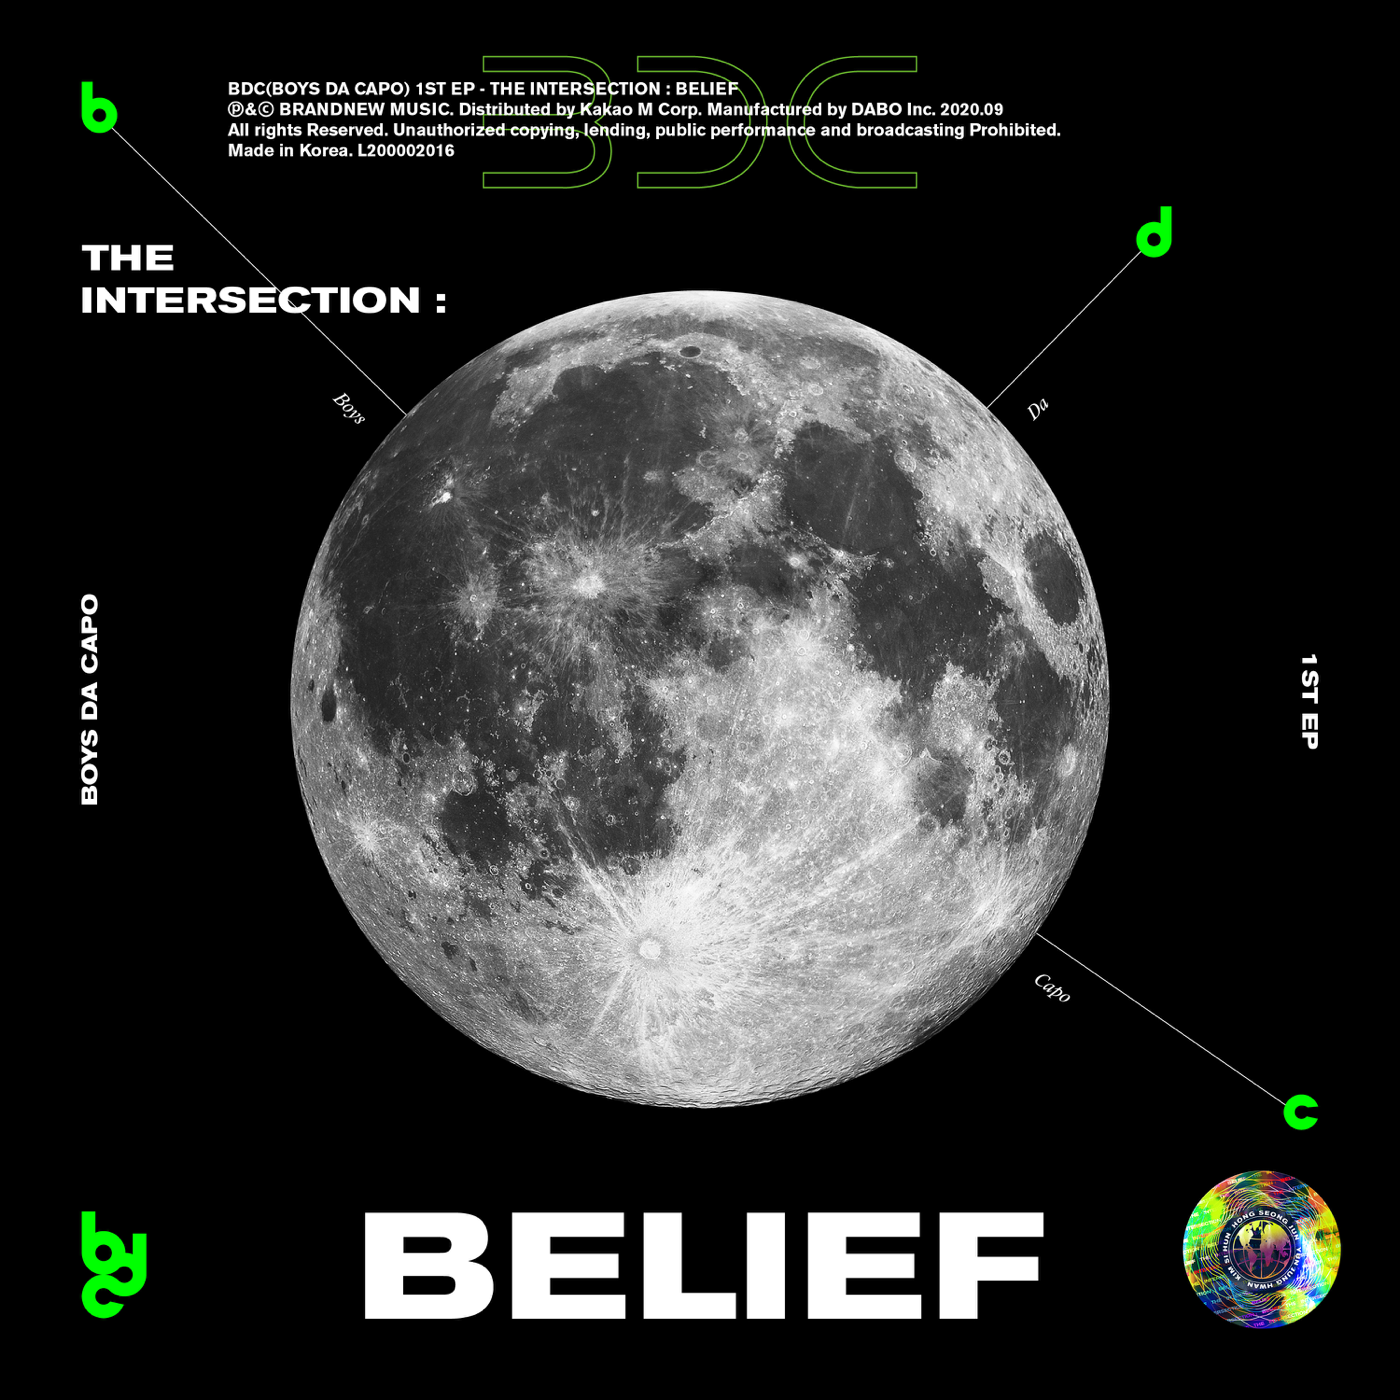 The Intersection : Belief